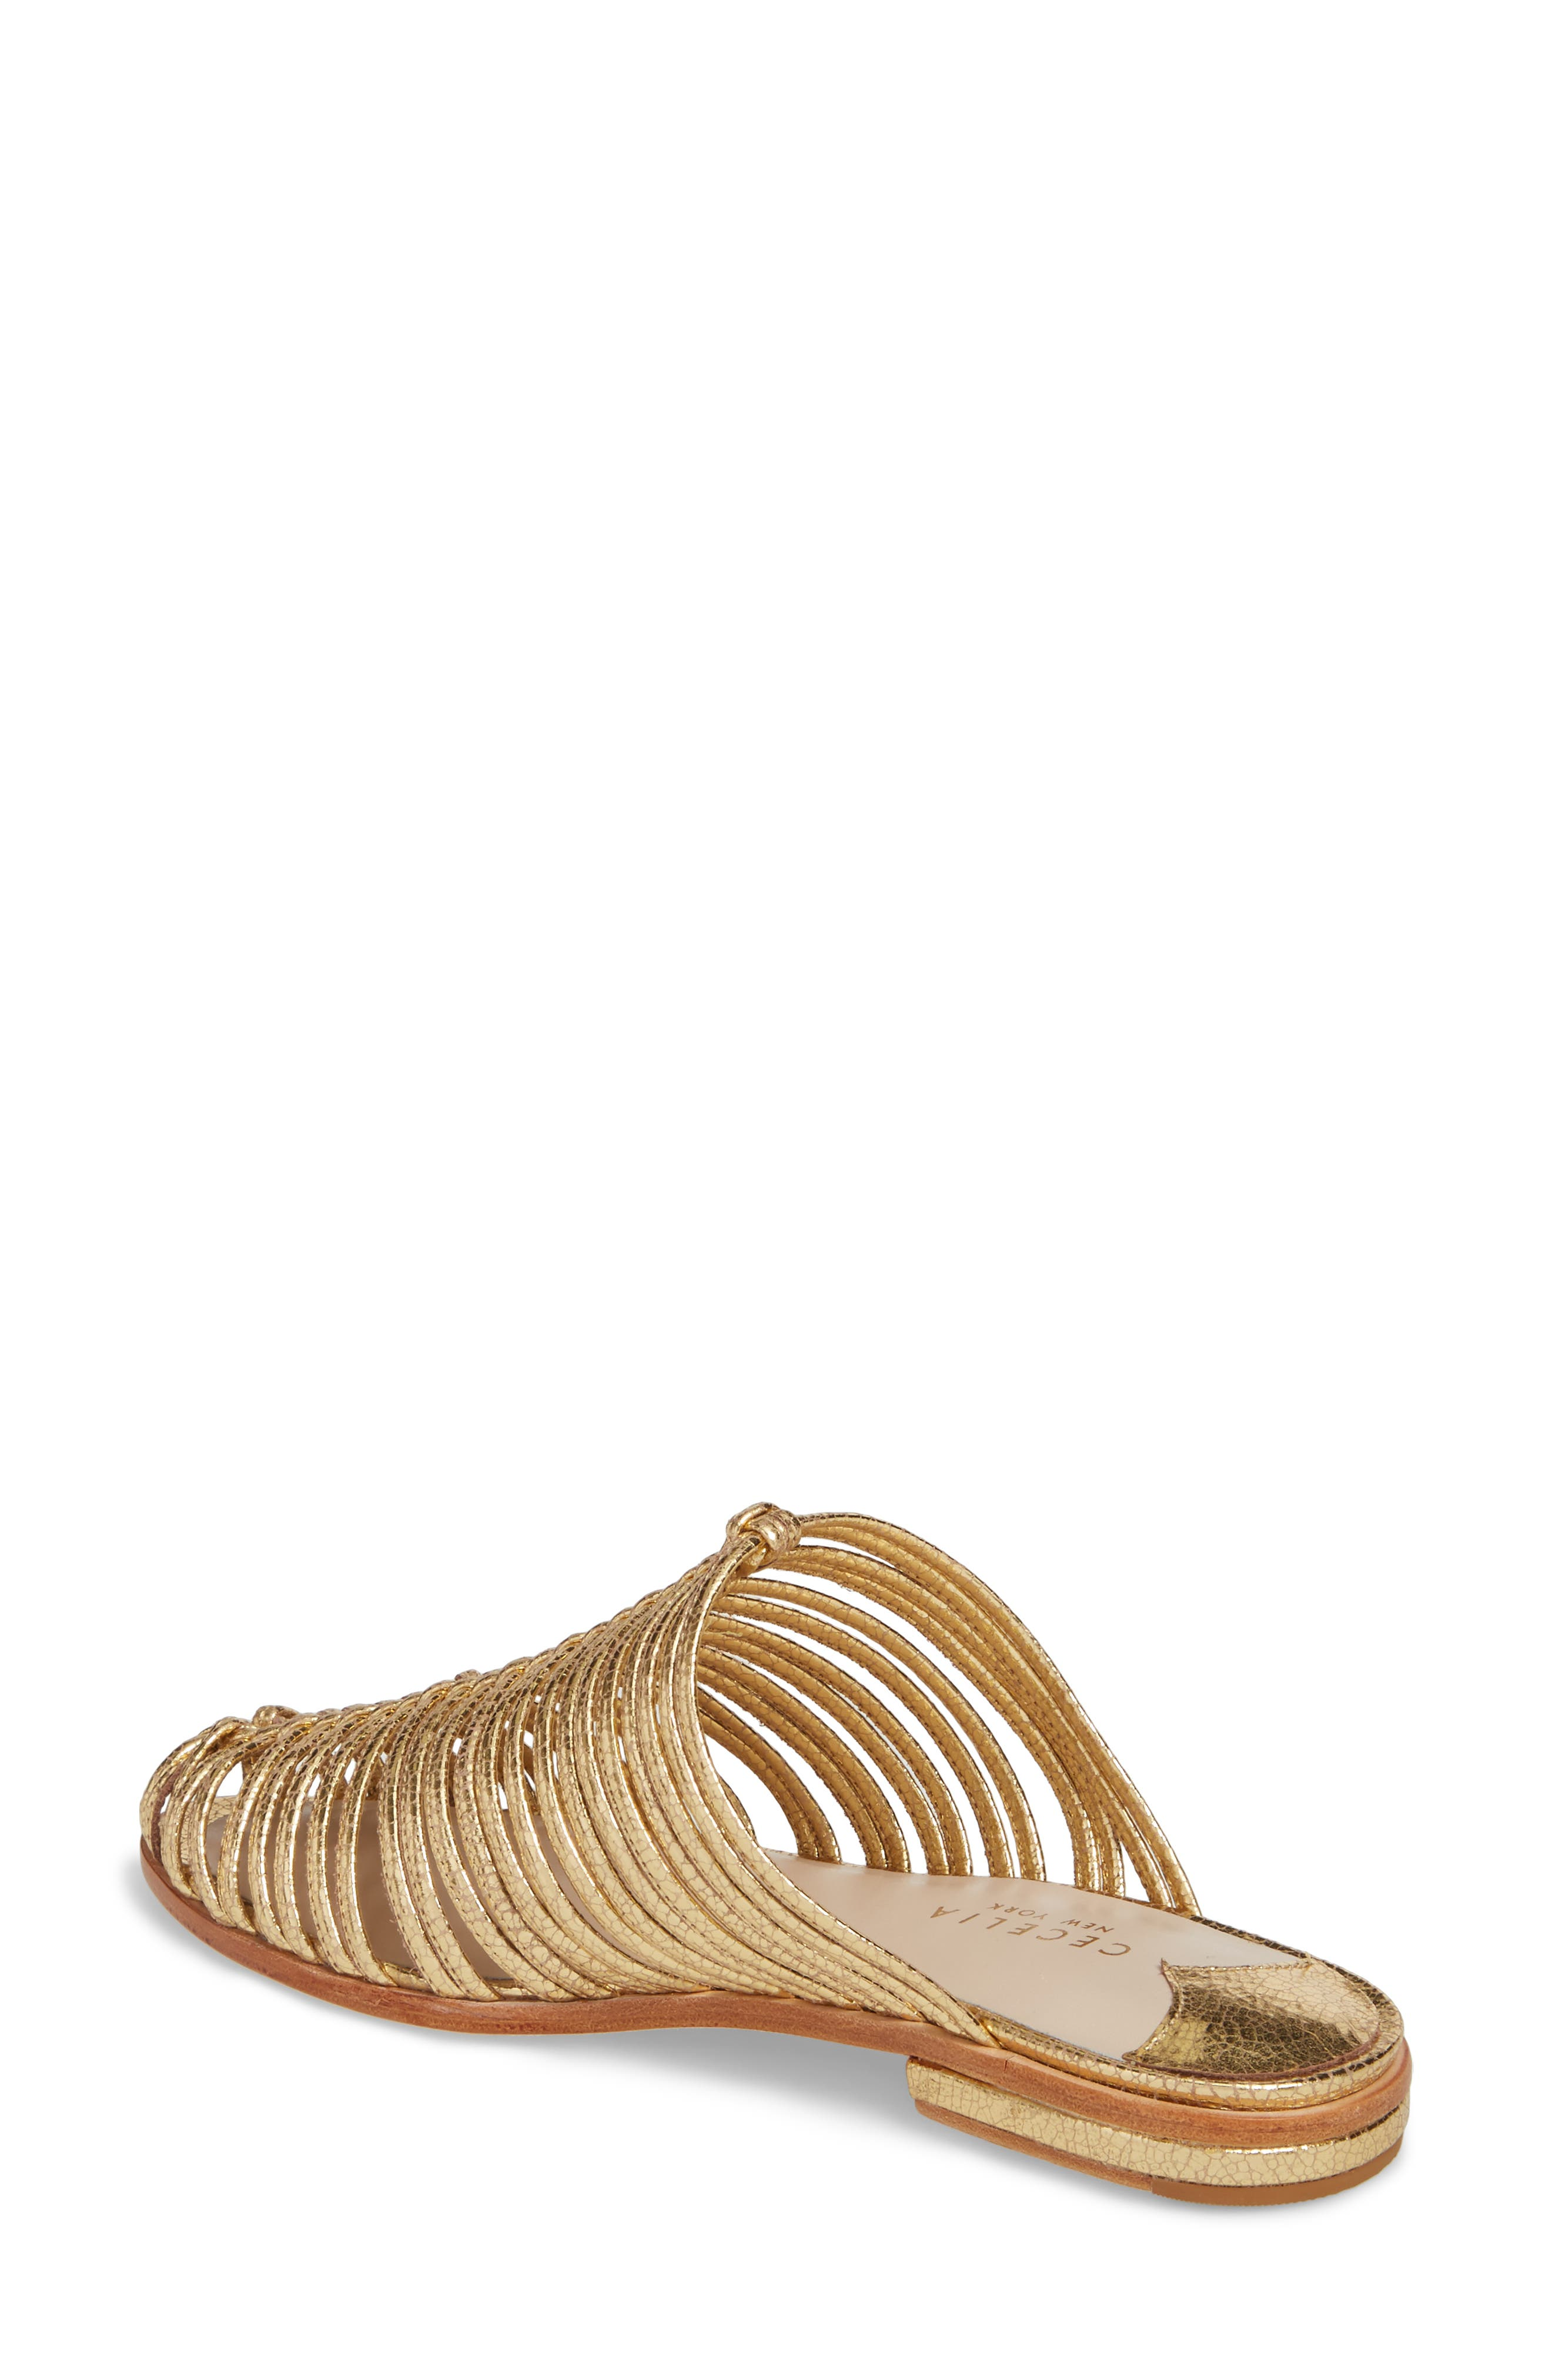 Gloria Sandal,                             Alternate thumbnail 2, color,                             GOLD LEATHER